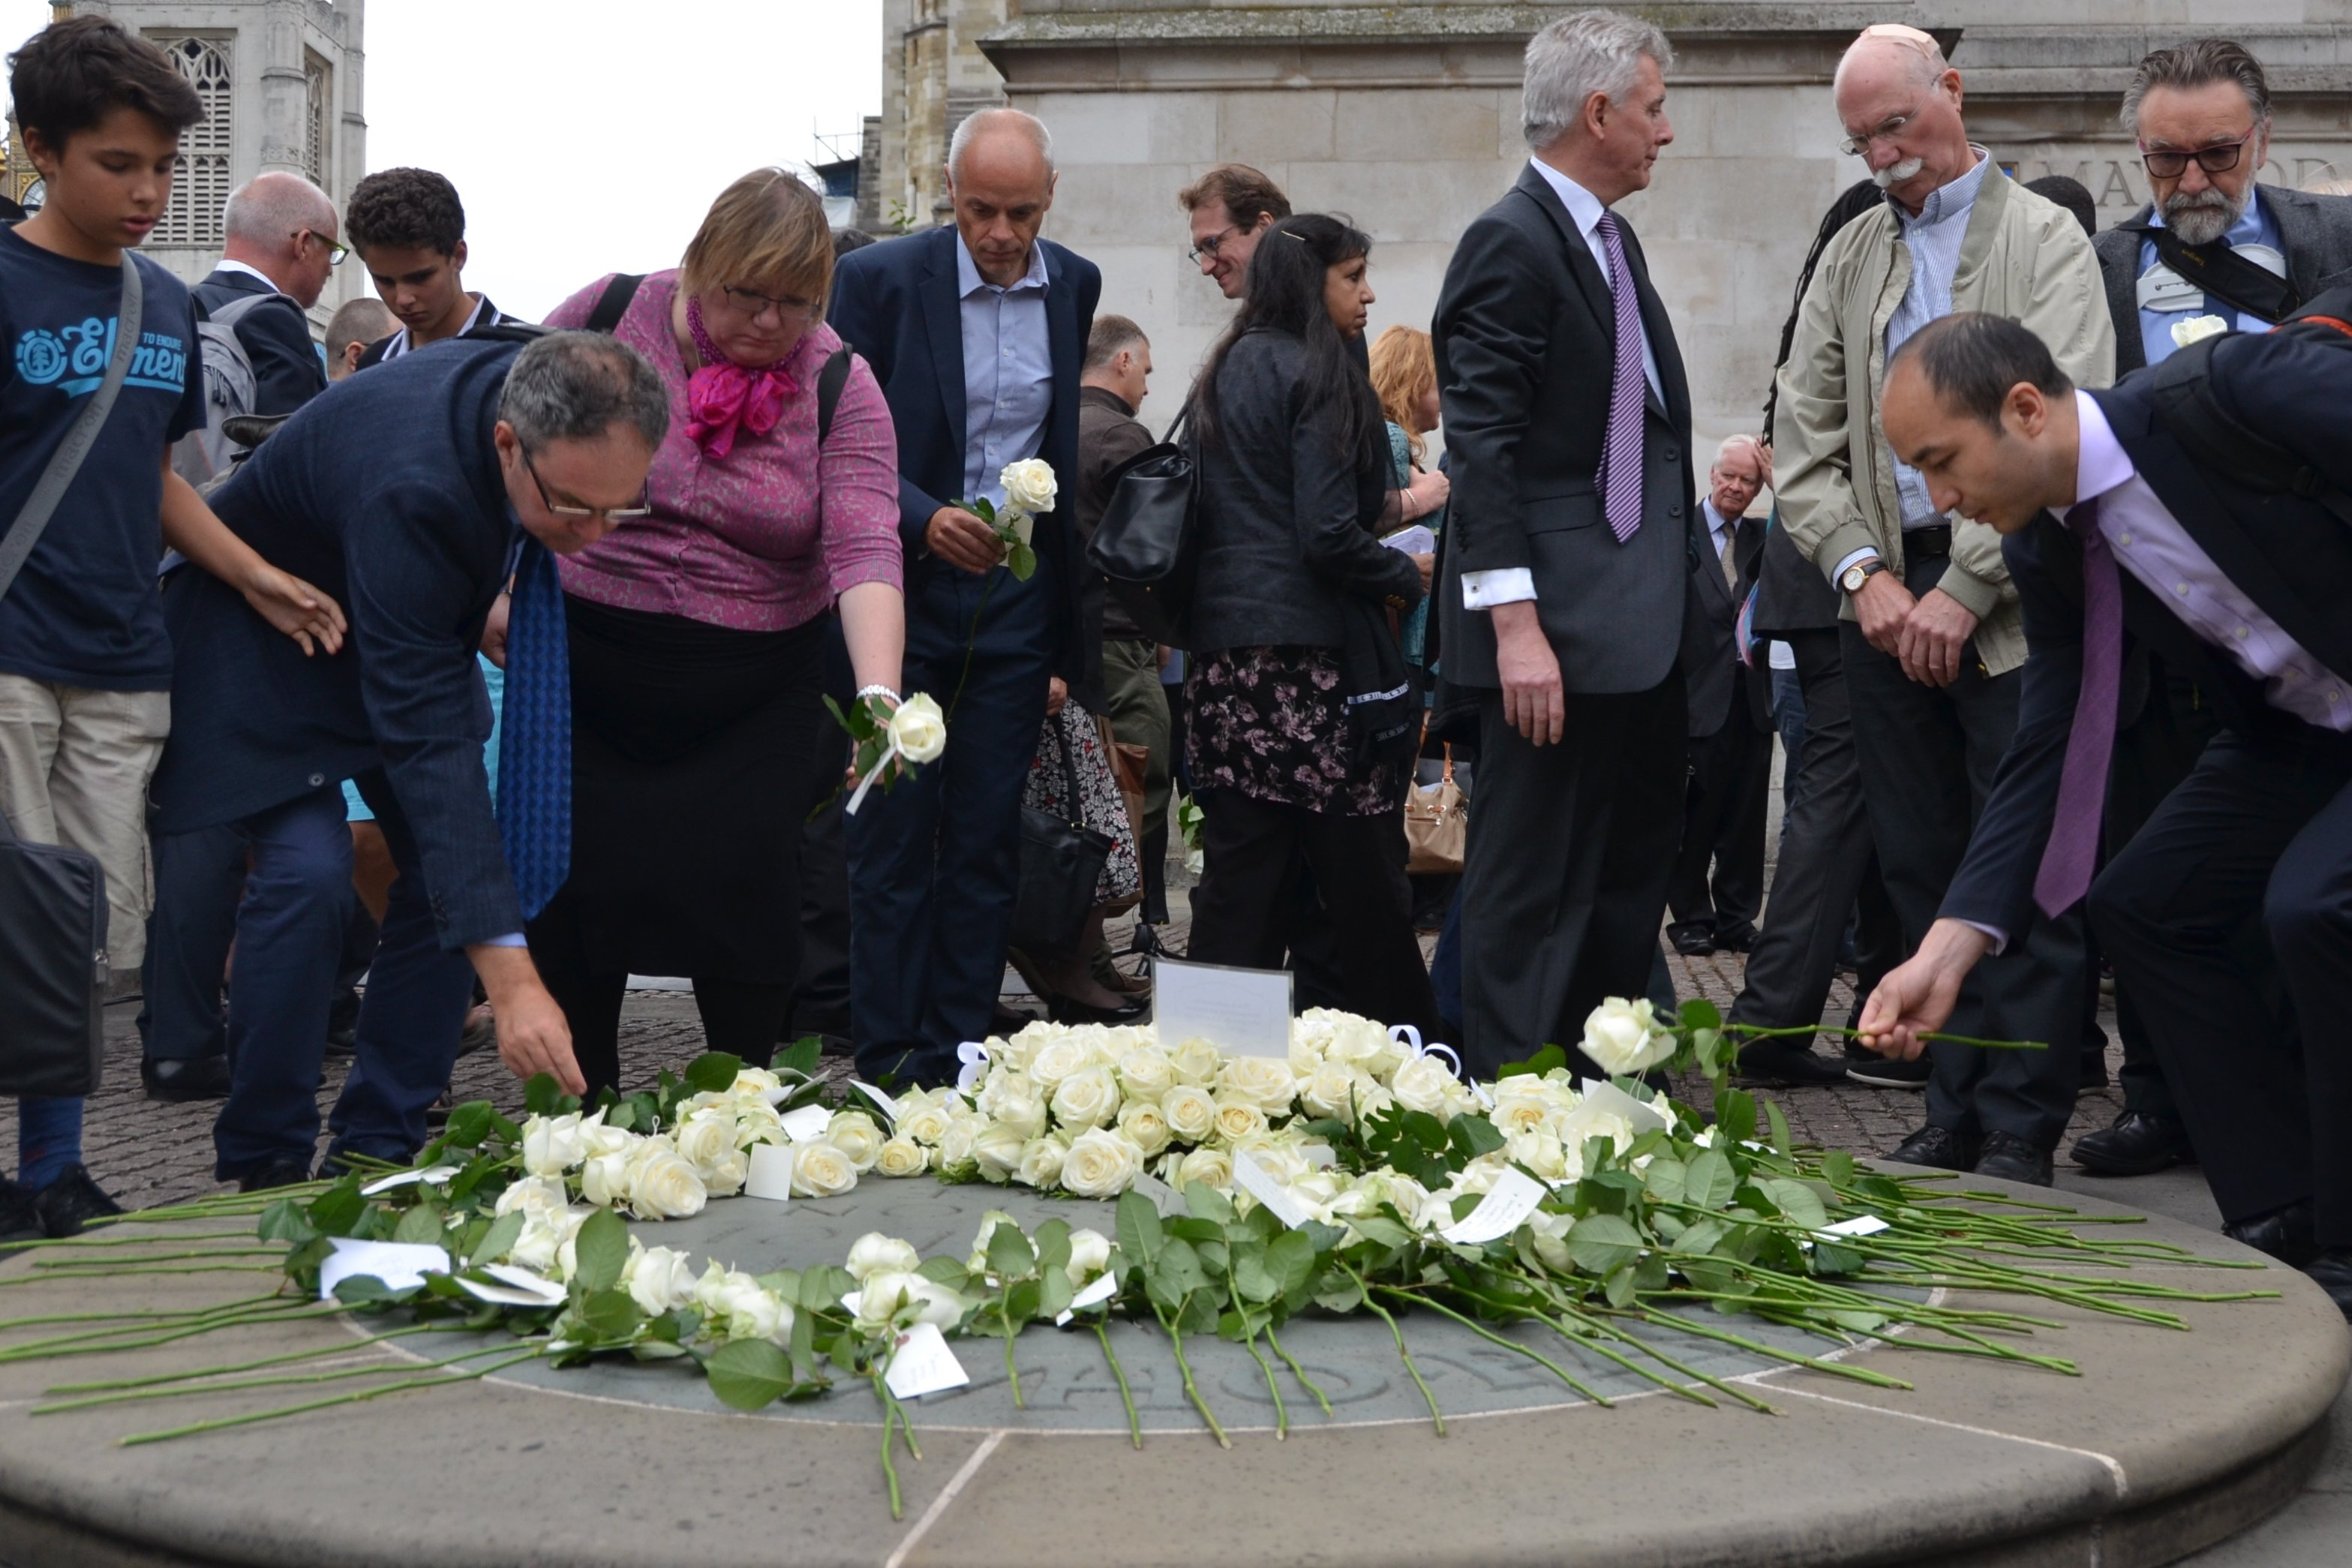 Friends, family and colleagues of aid workers killed in the course of humanitarian work lay a rose with the name of their loved one during a memorial outside Westminister Abbey in London on 18 August 2015 in the lead-up to World Humanitarian Day.